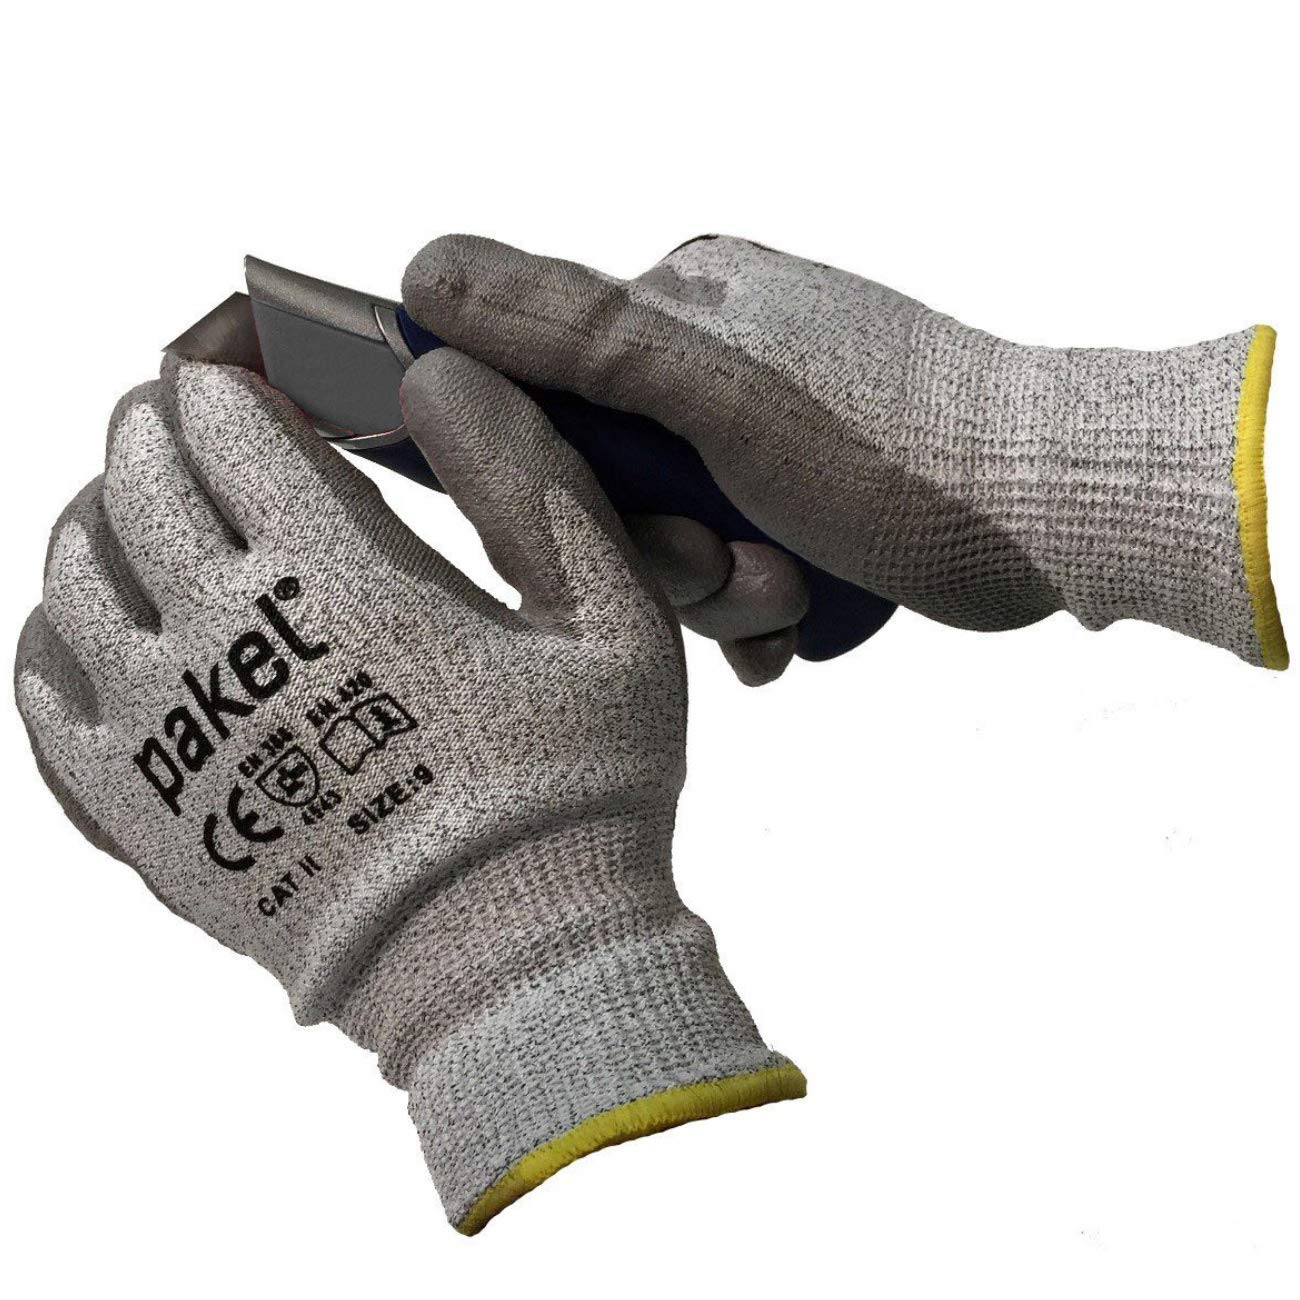 Pakel High Performance En388 CE Level 5 Cut Resistant Knit Wrist Gloves (Size 9 / Large / 10 Pairs)